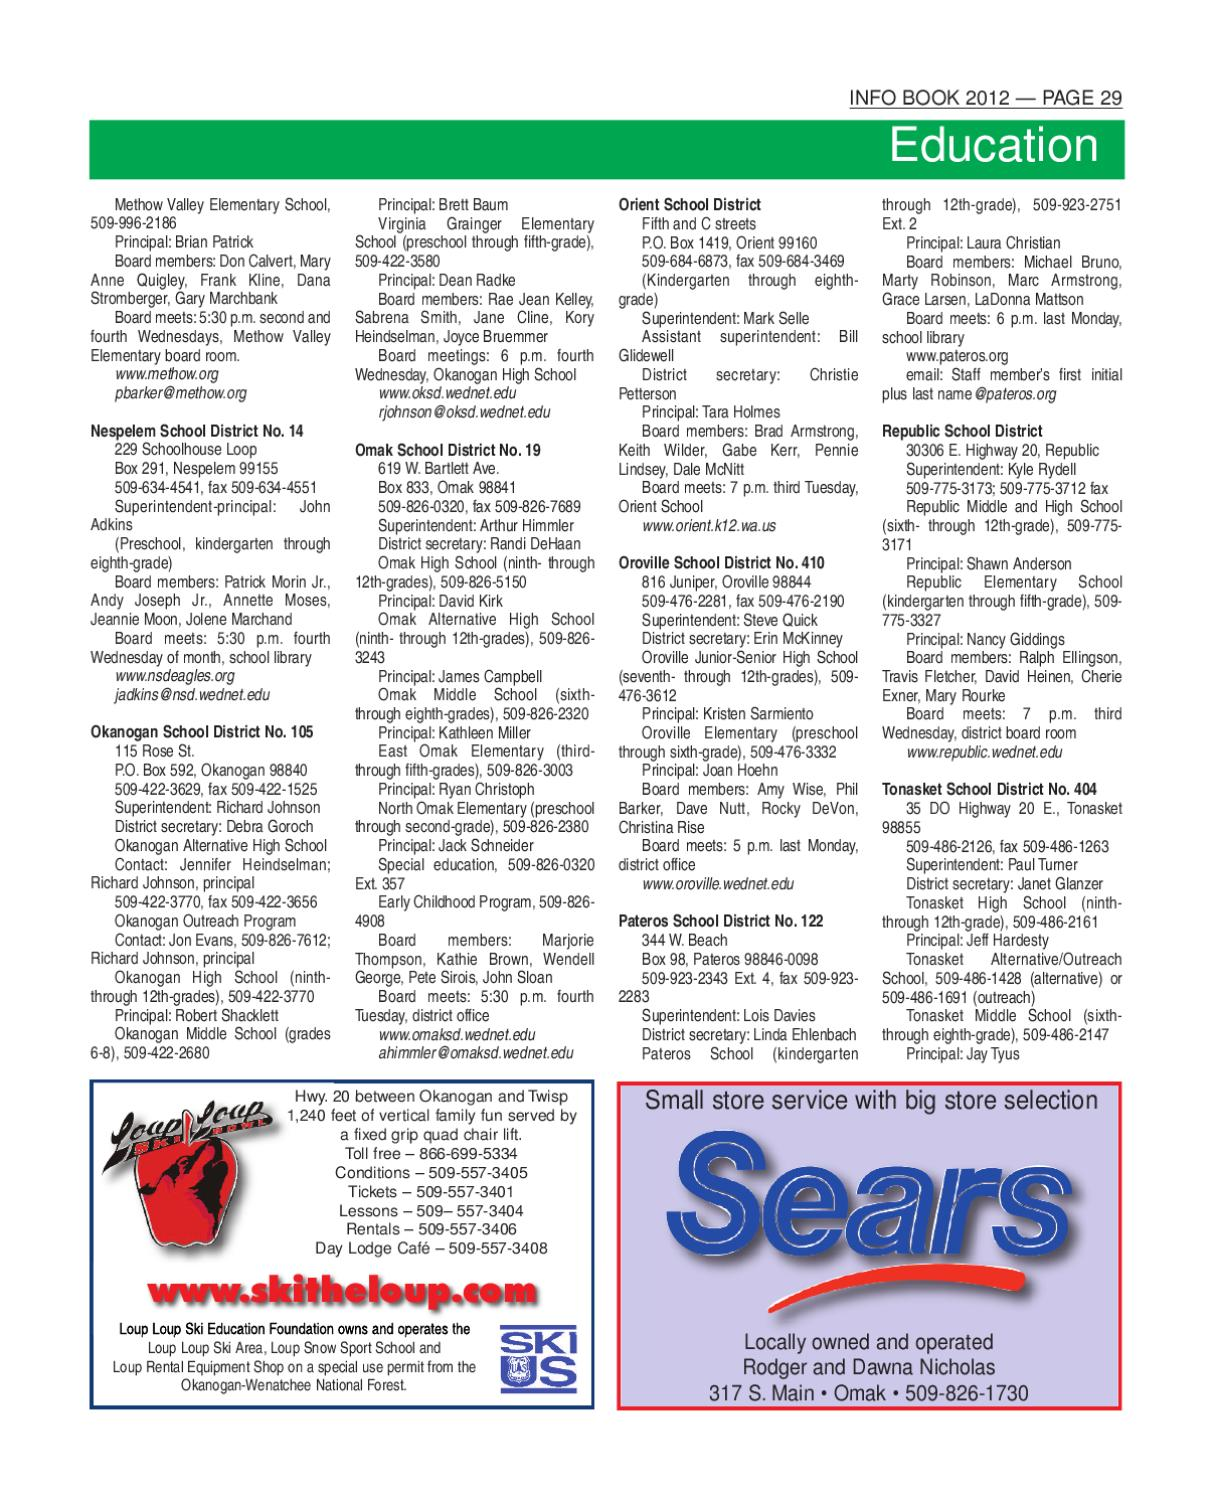 Infobook 2012 By The Omak Okanogan County Chronicle Newspaper Issuu